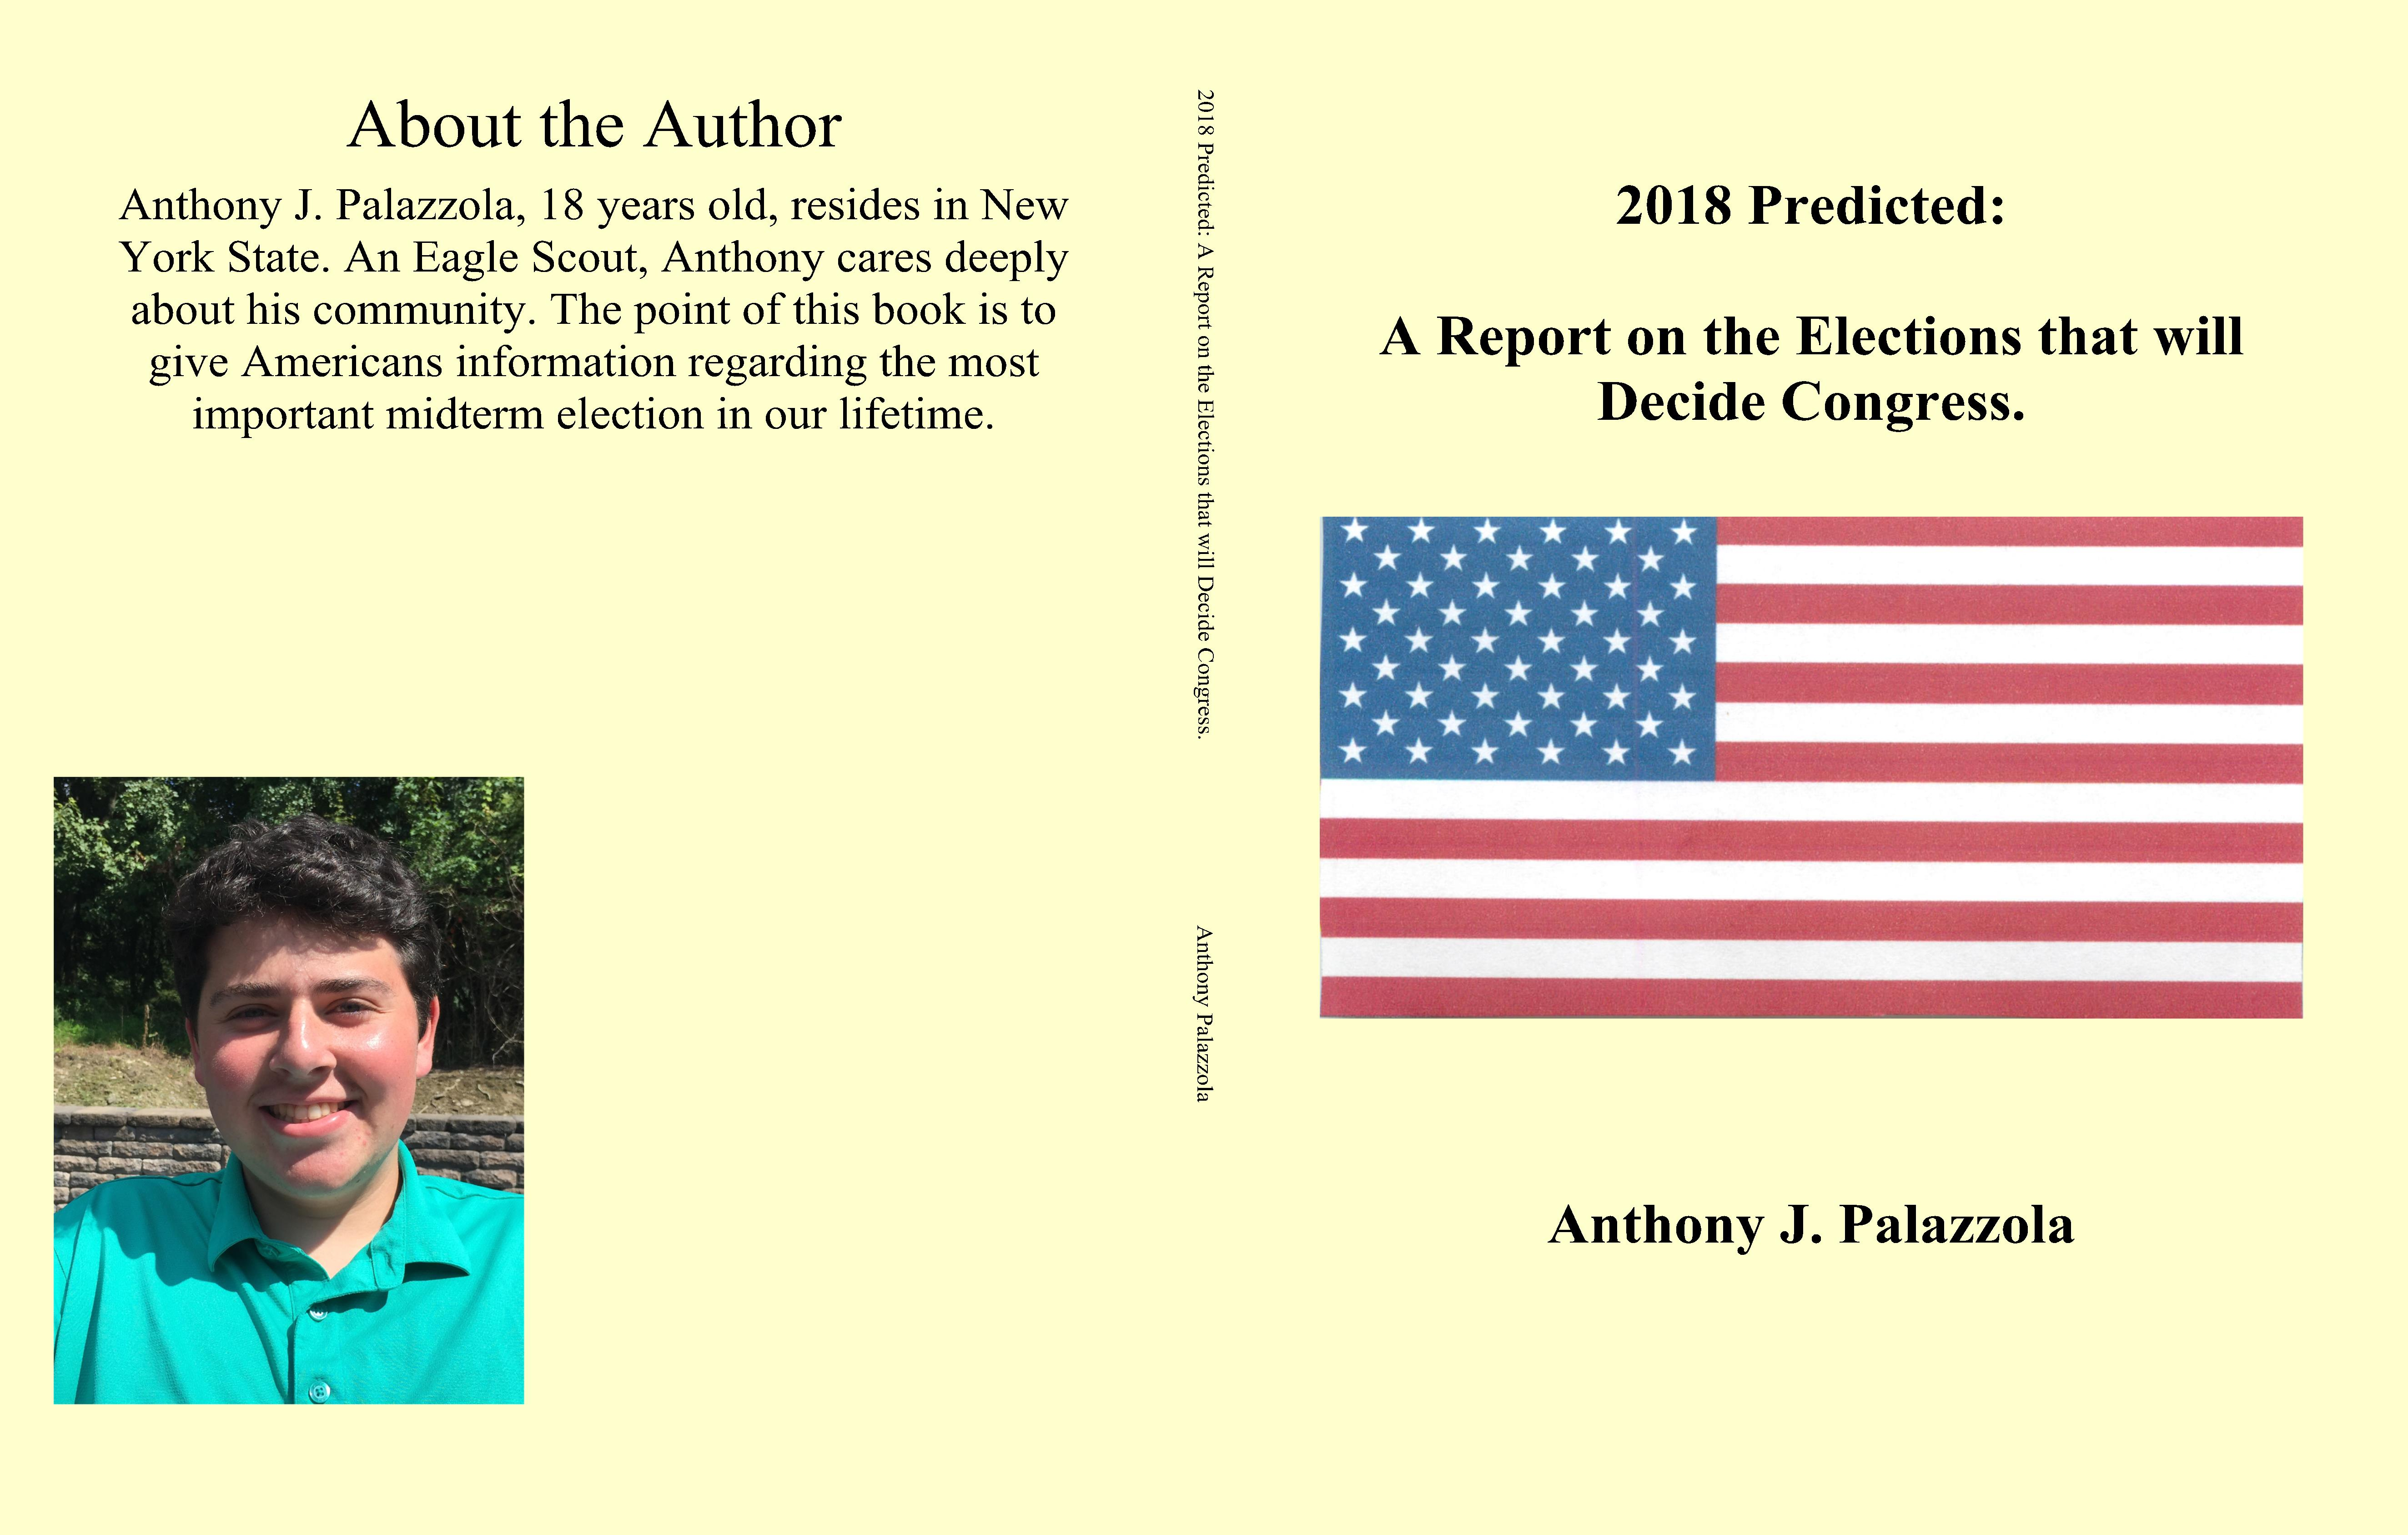 2018 Predicted: A Report on the Elections that will Decide Congress. cover image